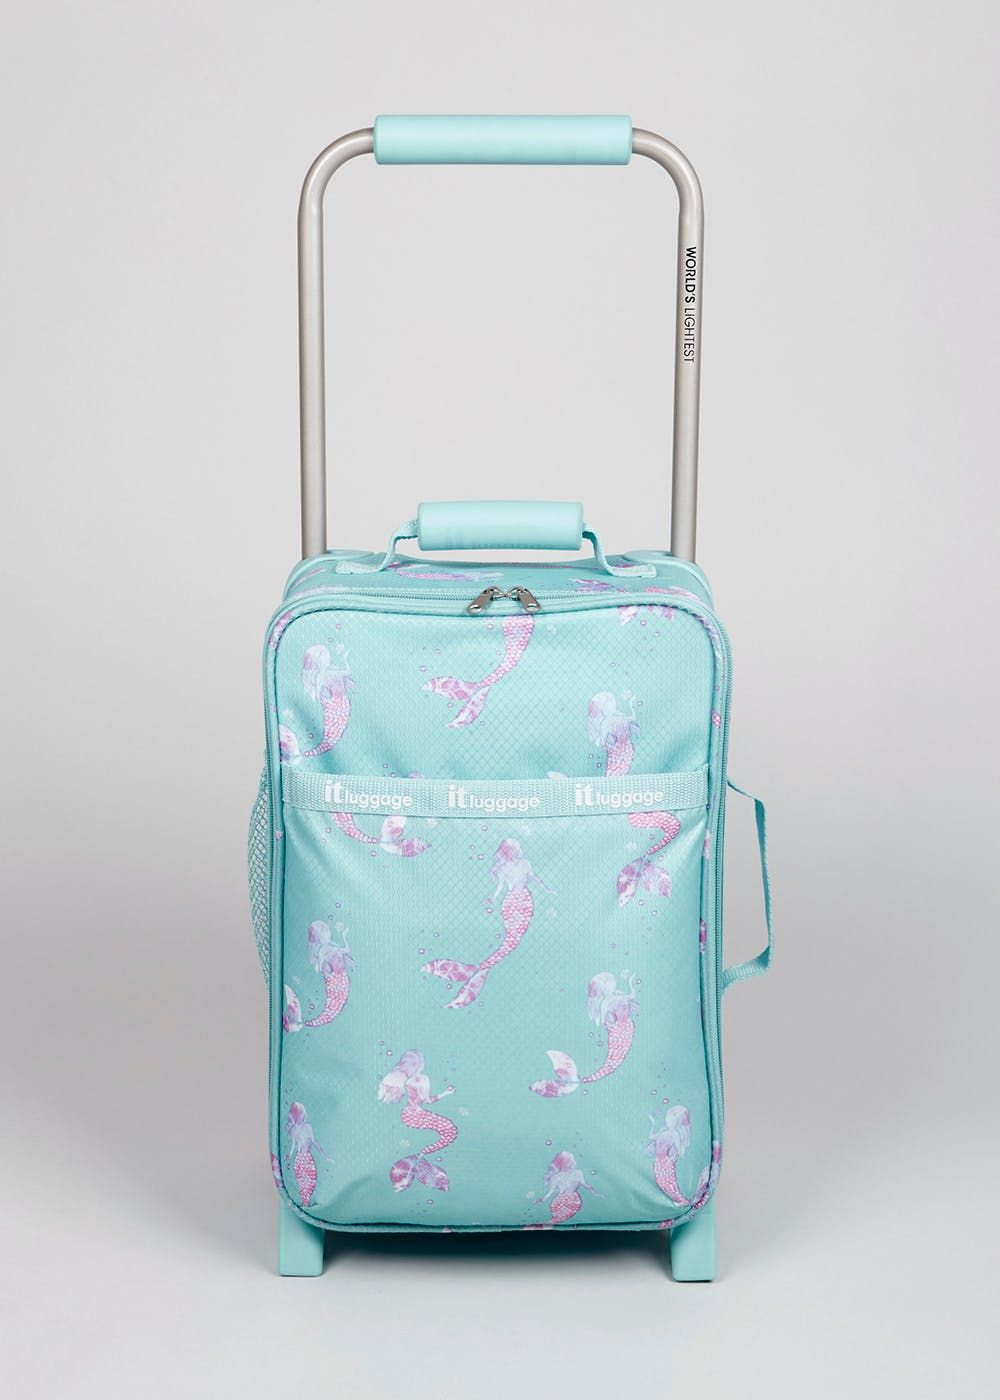 37854ebf6 All the benefits of IT luggage's award-winning world's lightest case, but  in a magical kids mermaid design. The case features multiple sections and.